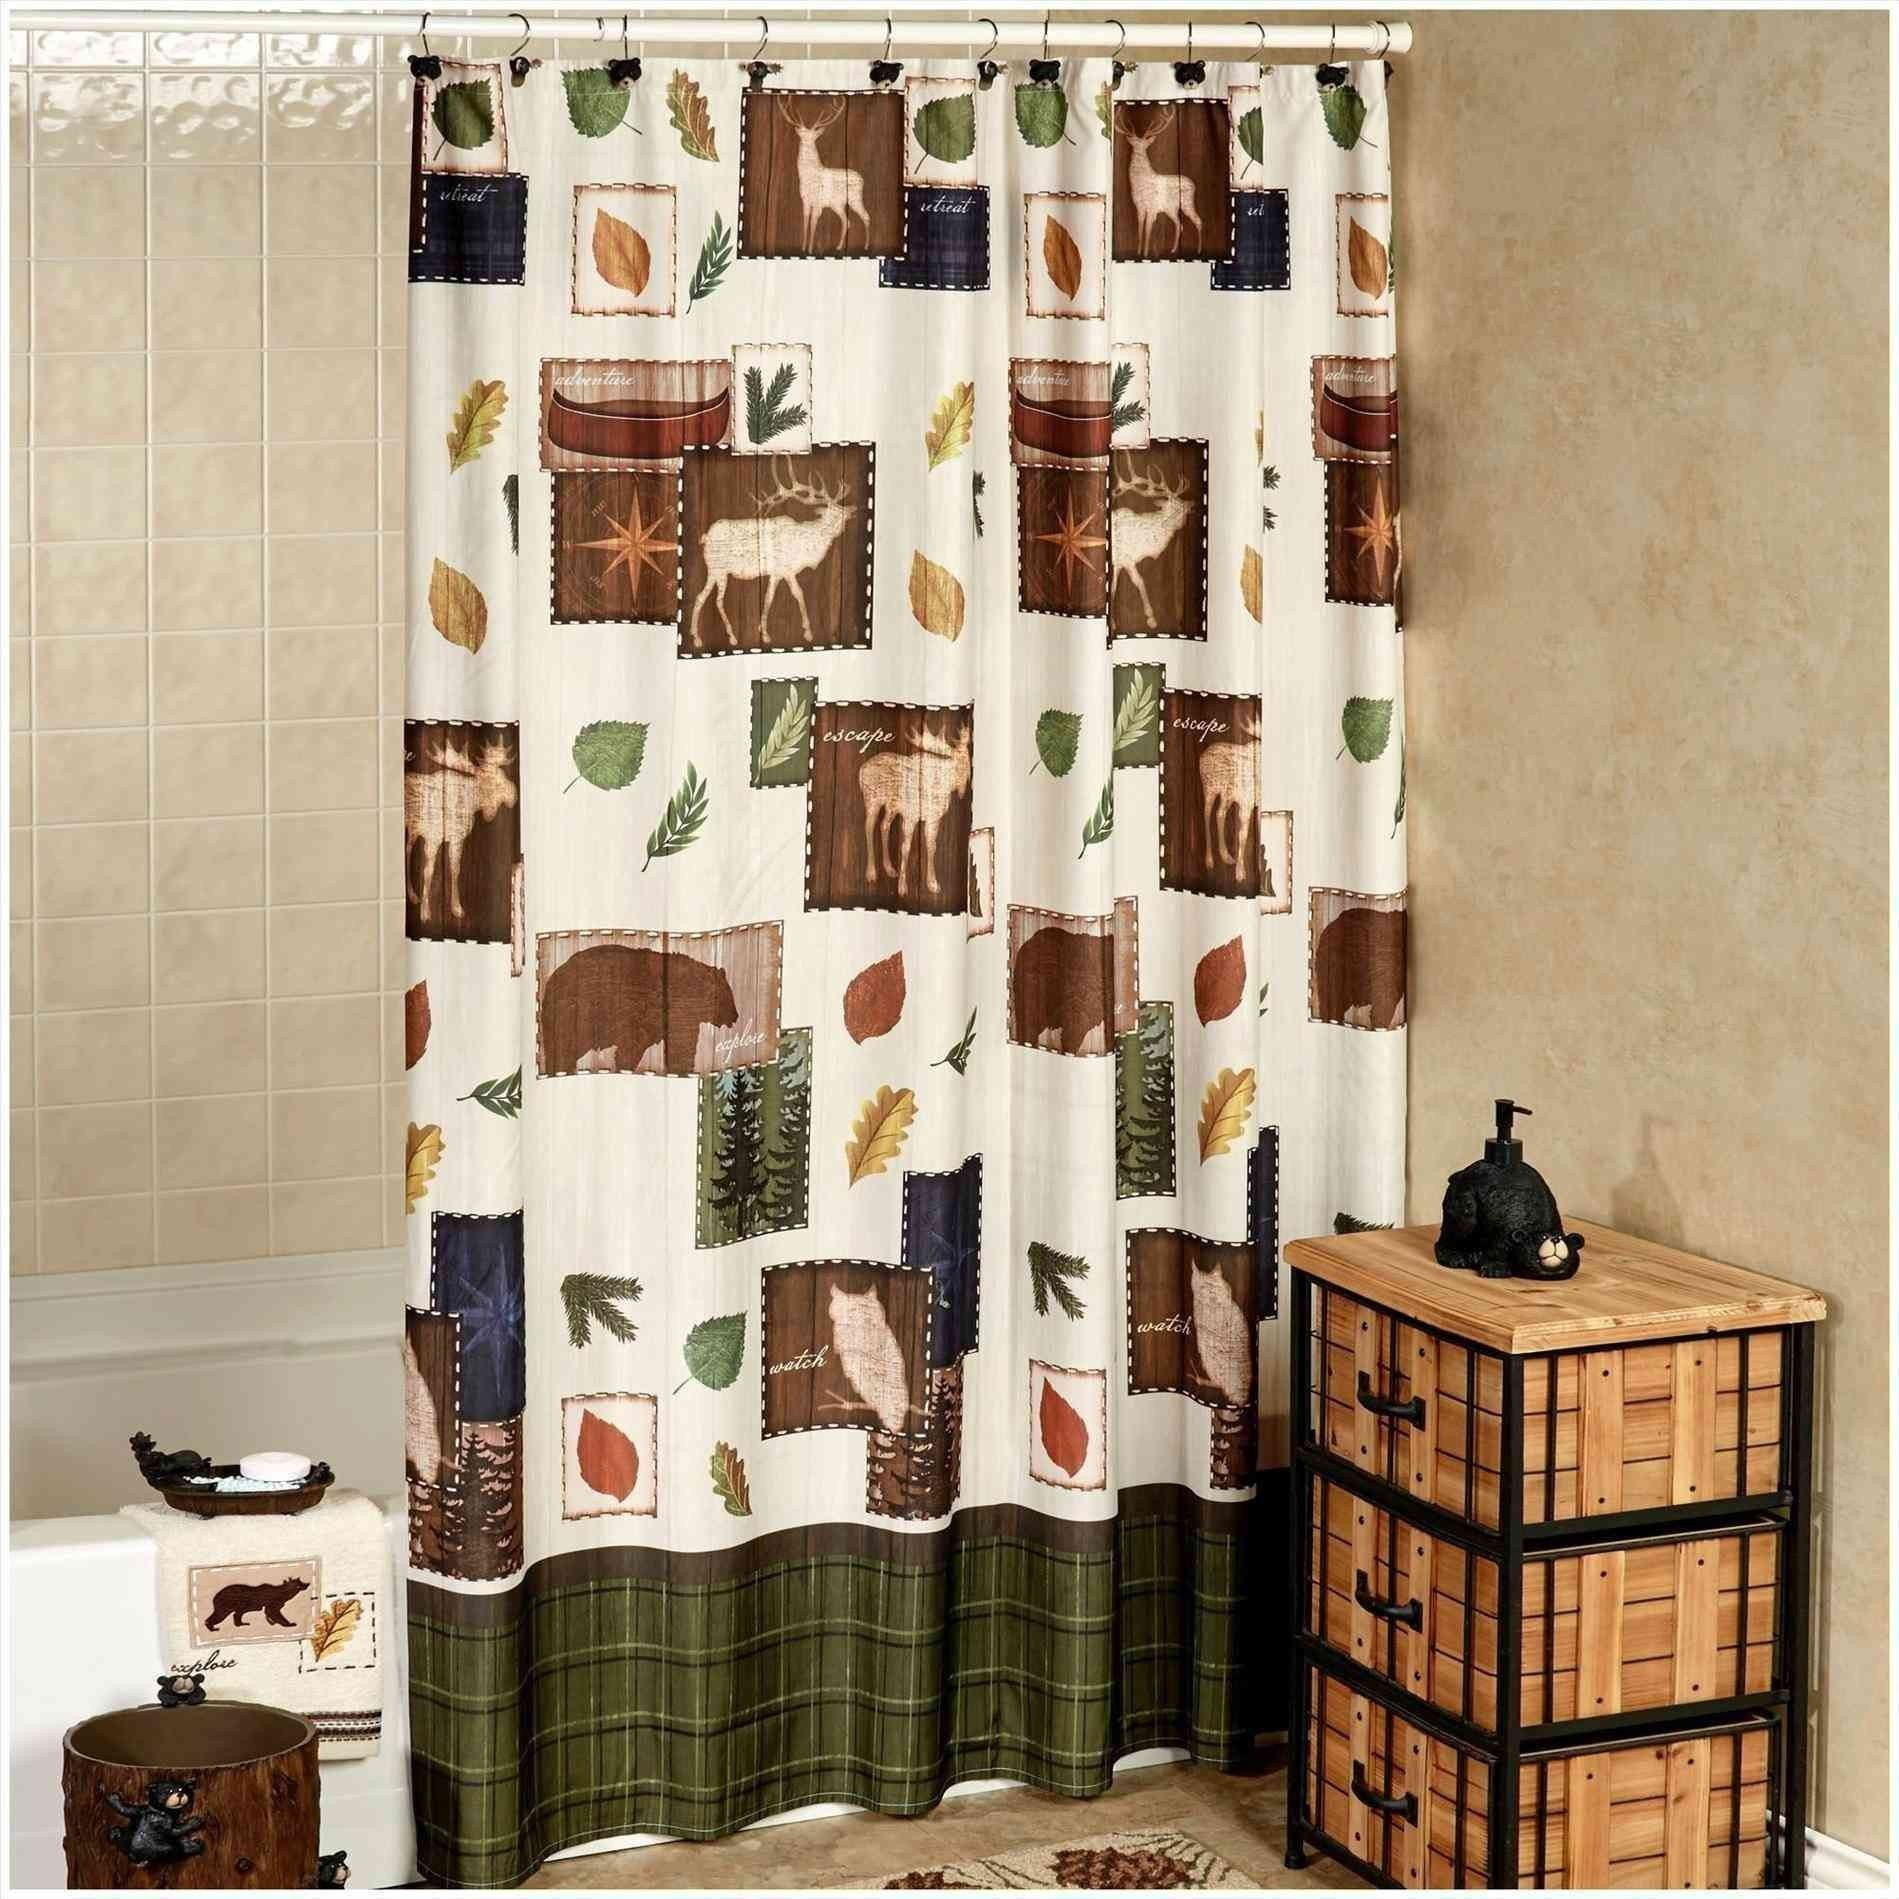 Beautiful Wildlife Shower Curtains Shower Cabin Rustic Bathroom Shower Lodge Shower Curtain